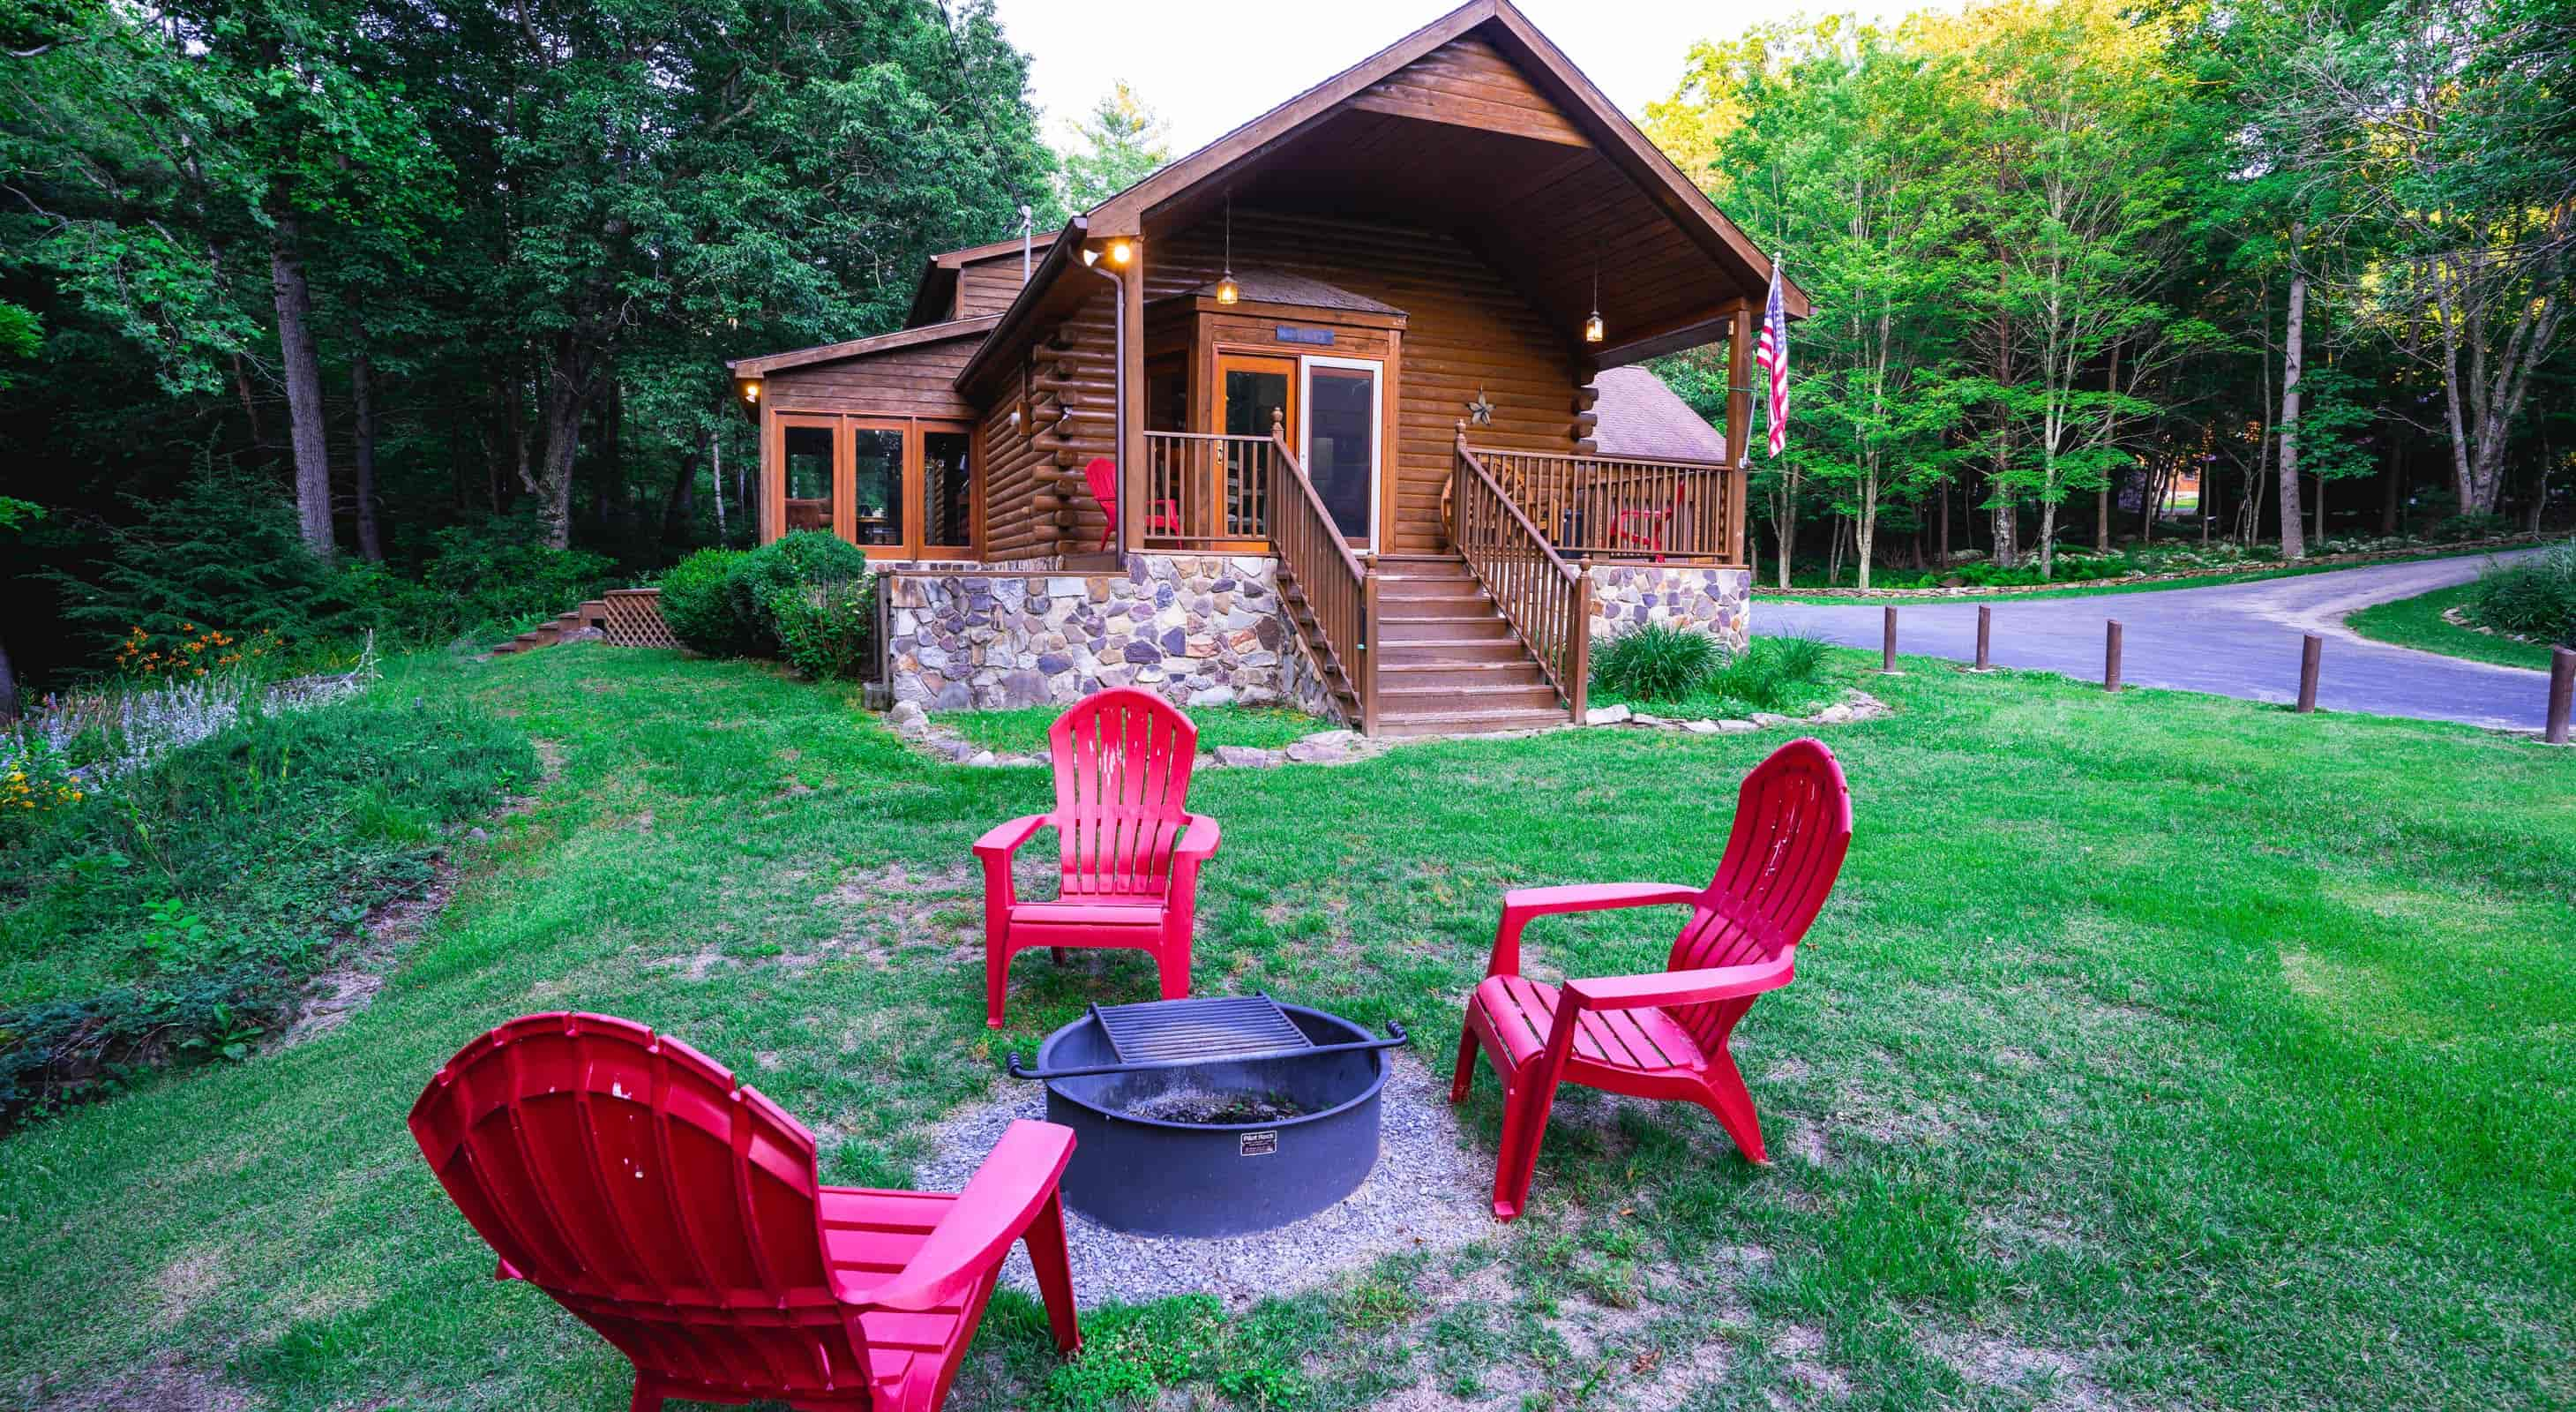 Creekside Home exterior Fire pit and chairs